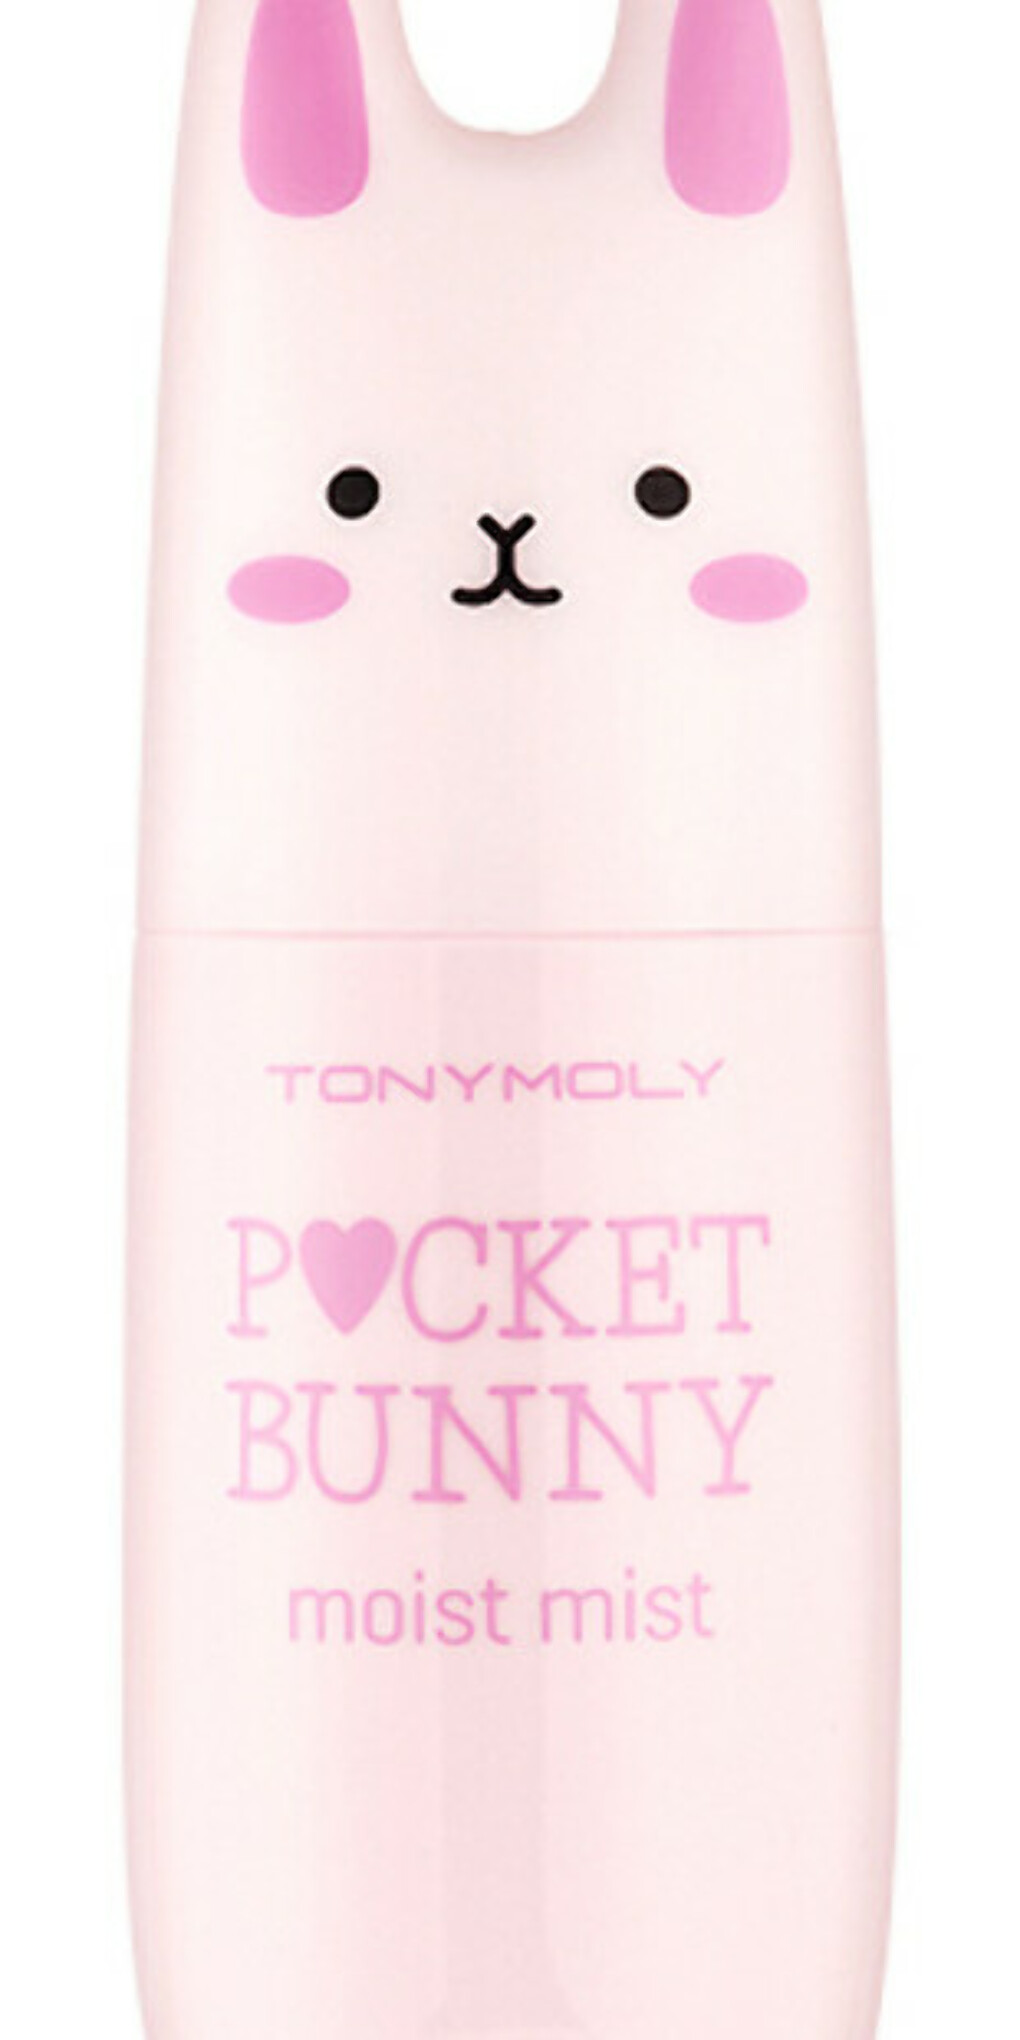 Pocket Bunny Moist Mist #2